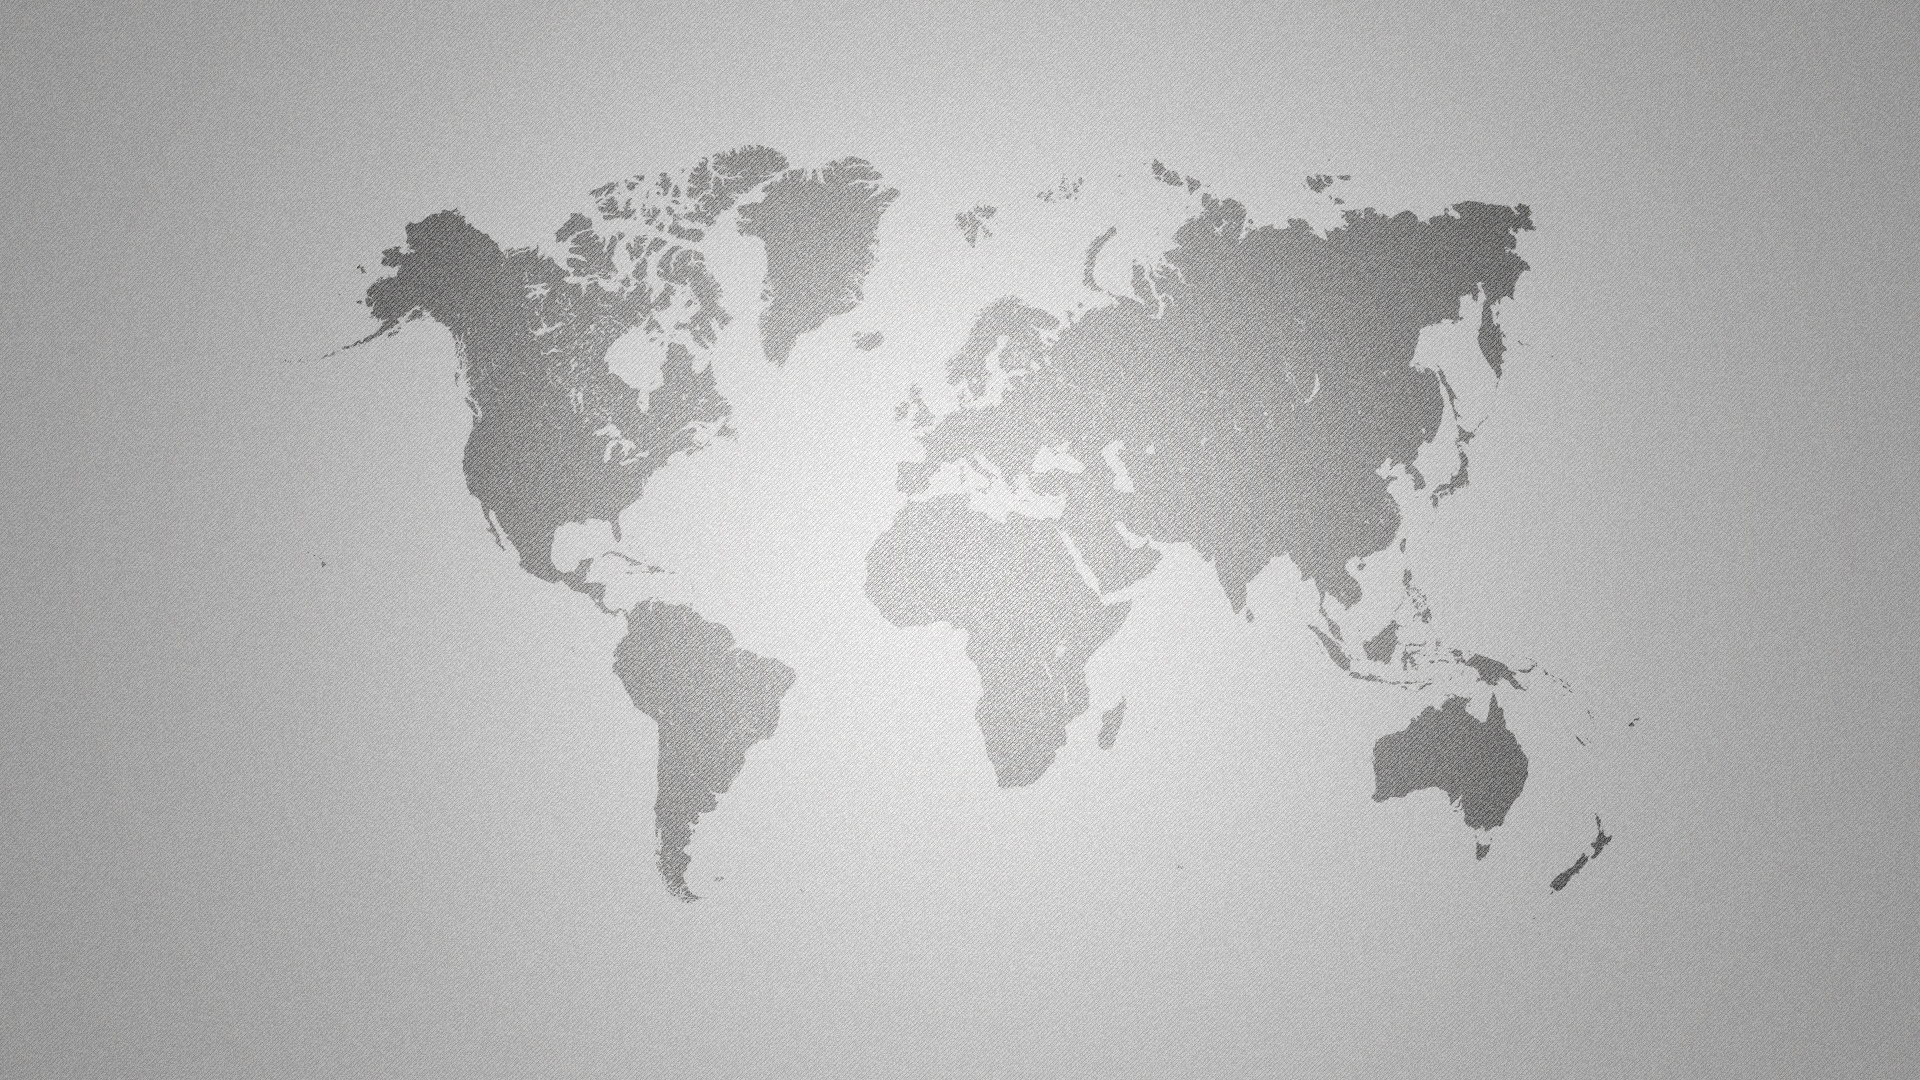 World map computer wallpaper 51297 1920x1080 px hdwallsource world map computer wallpaper 51297 gumiabroncs Images